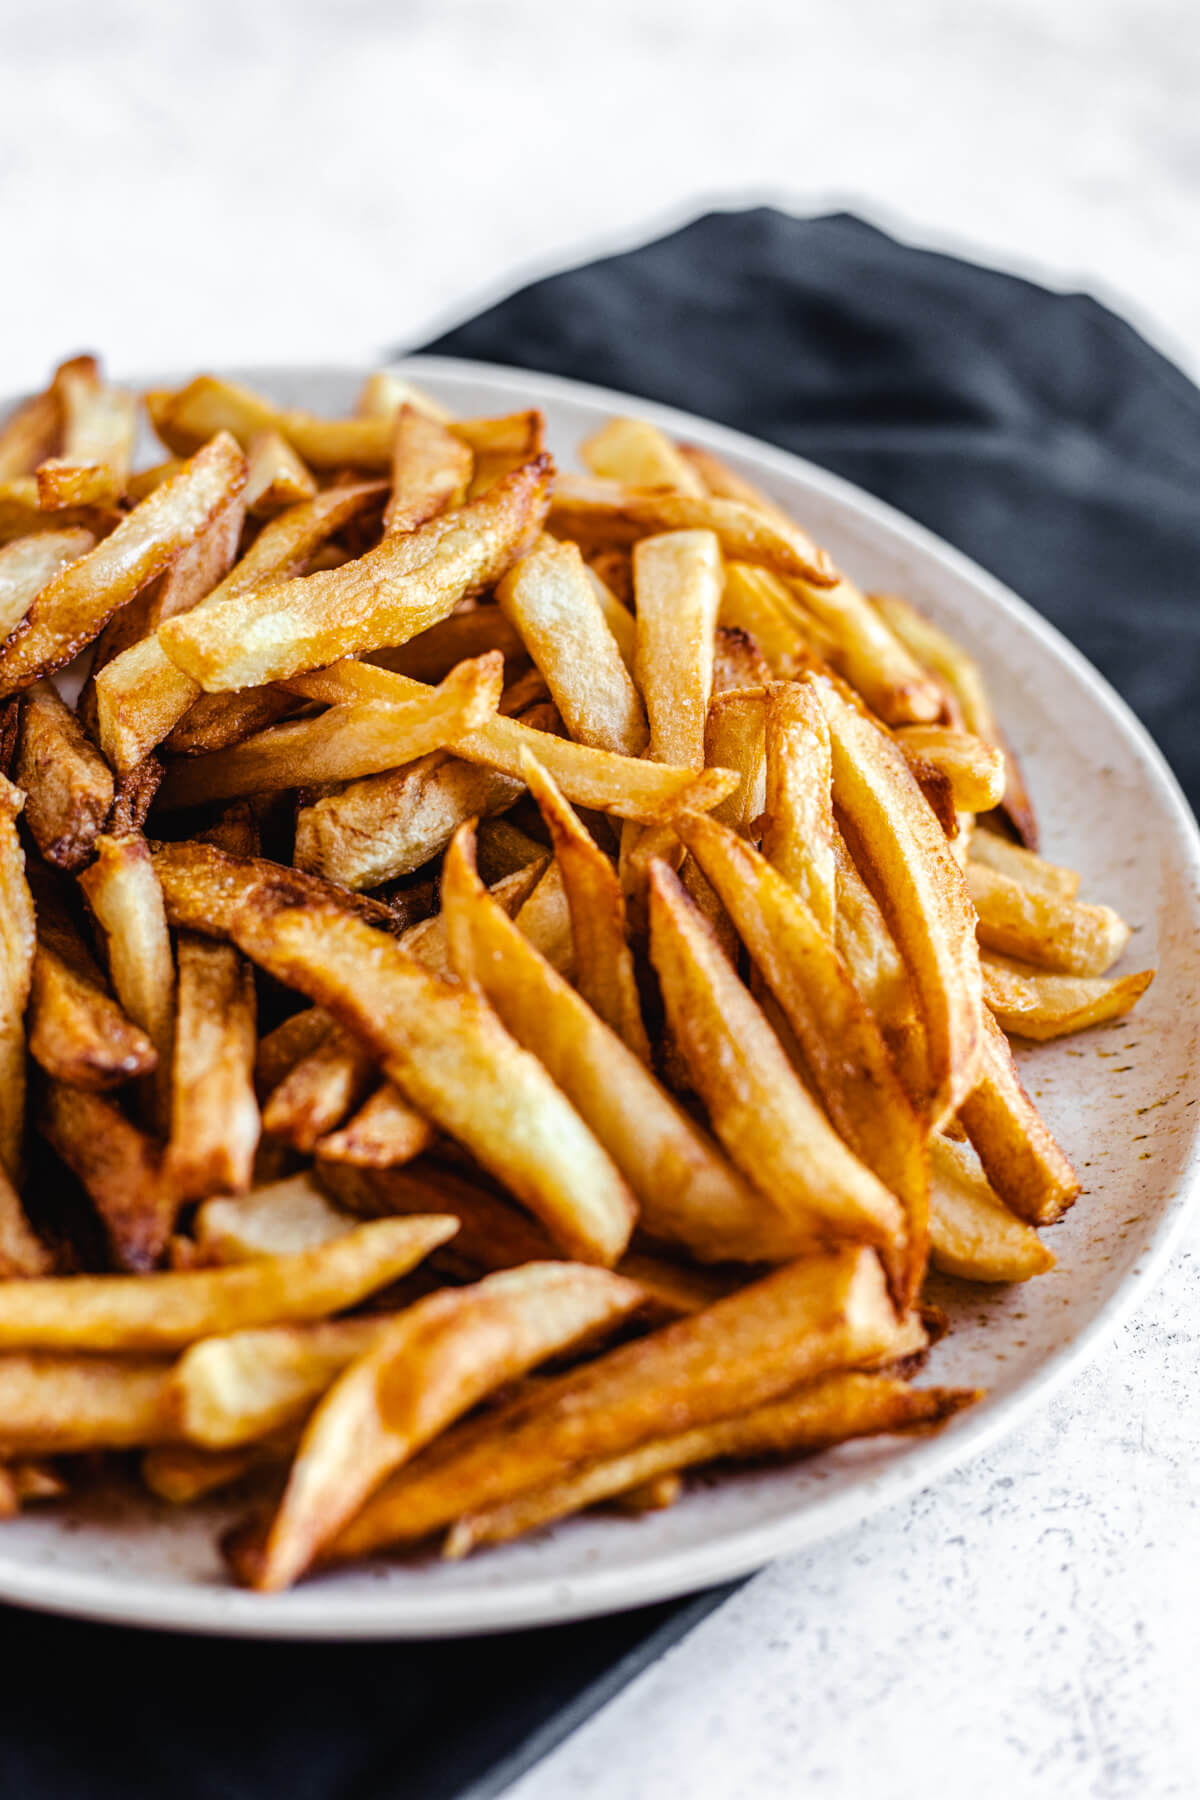 close up of cooked French fries on a plate